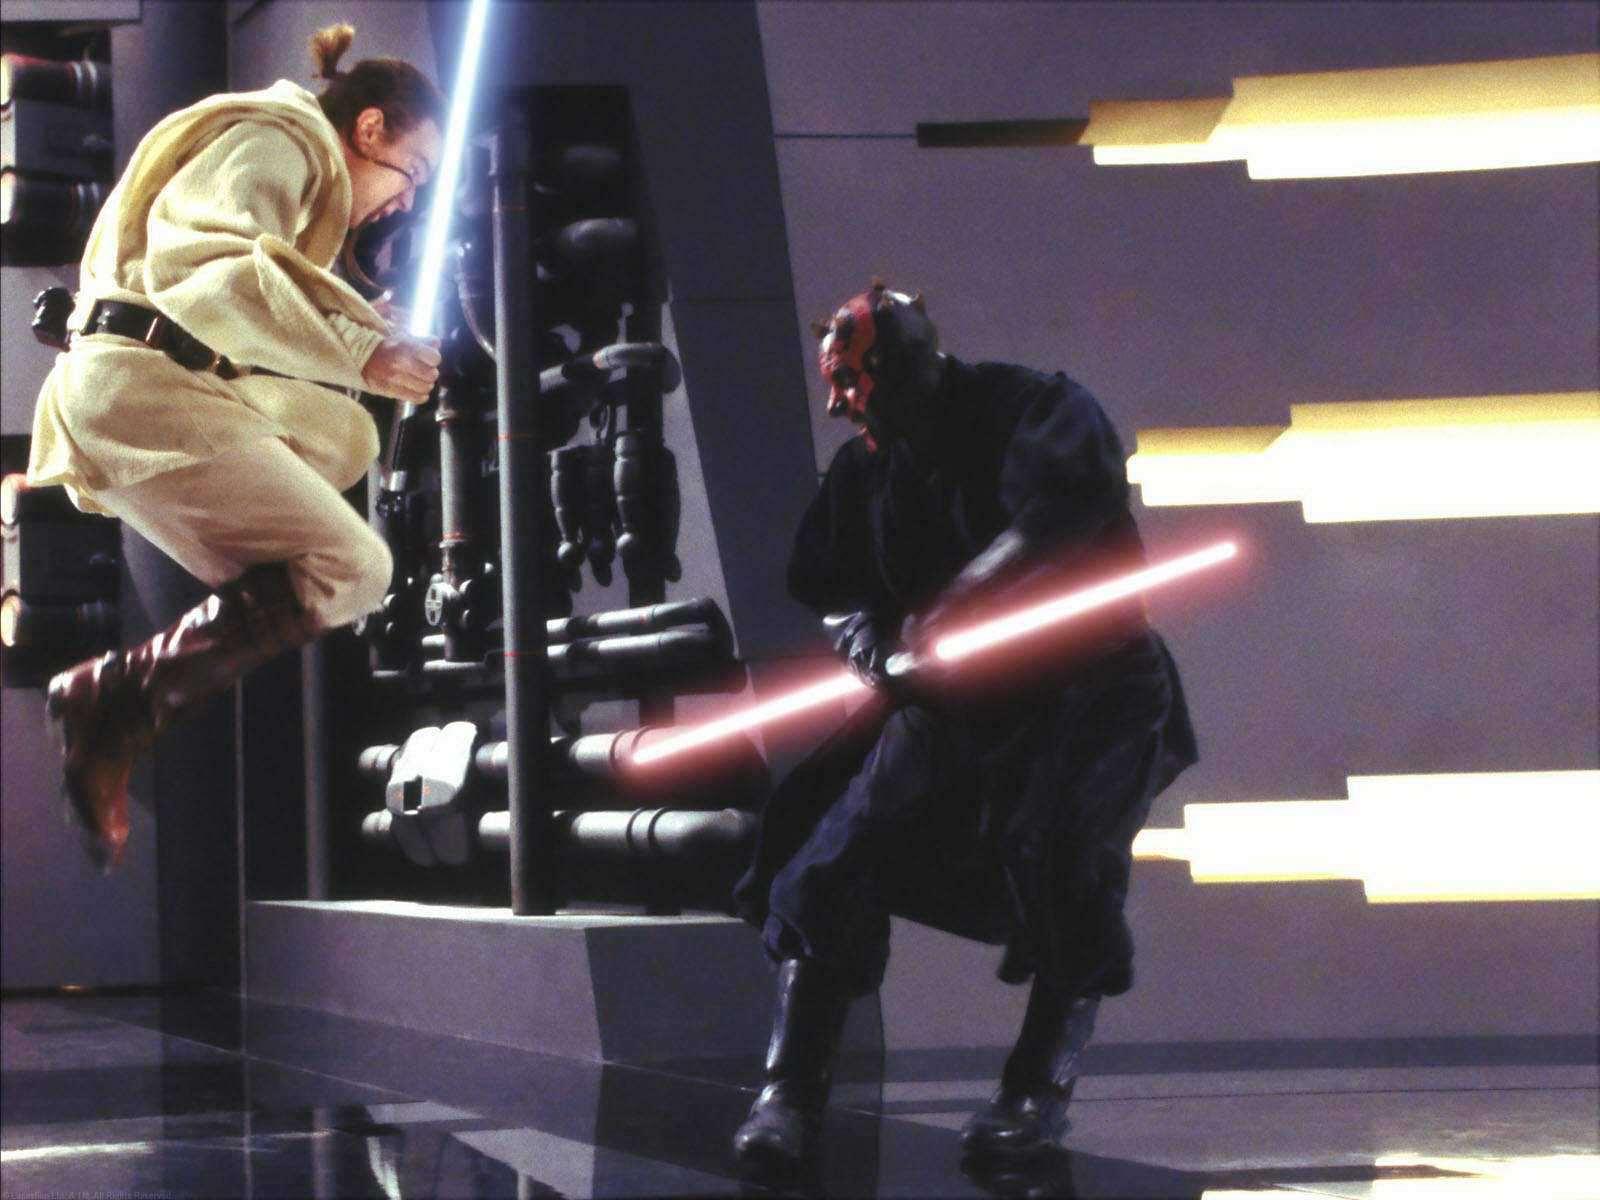 phantom menace vs star wars essay The phantom menace return of the jedi at least has a cast of great characters the ewoks are kind of annoying but the characters that we know and love from the first two films make a welcome return and are great to spend time with.